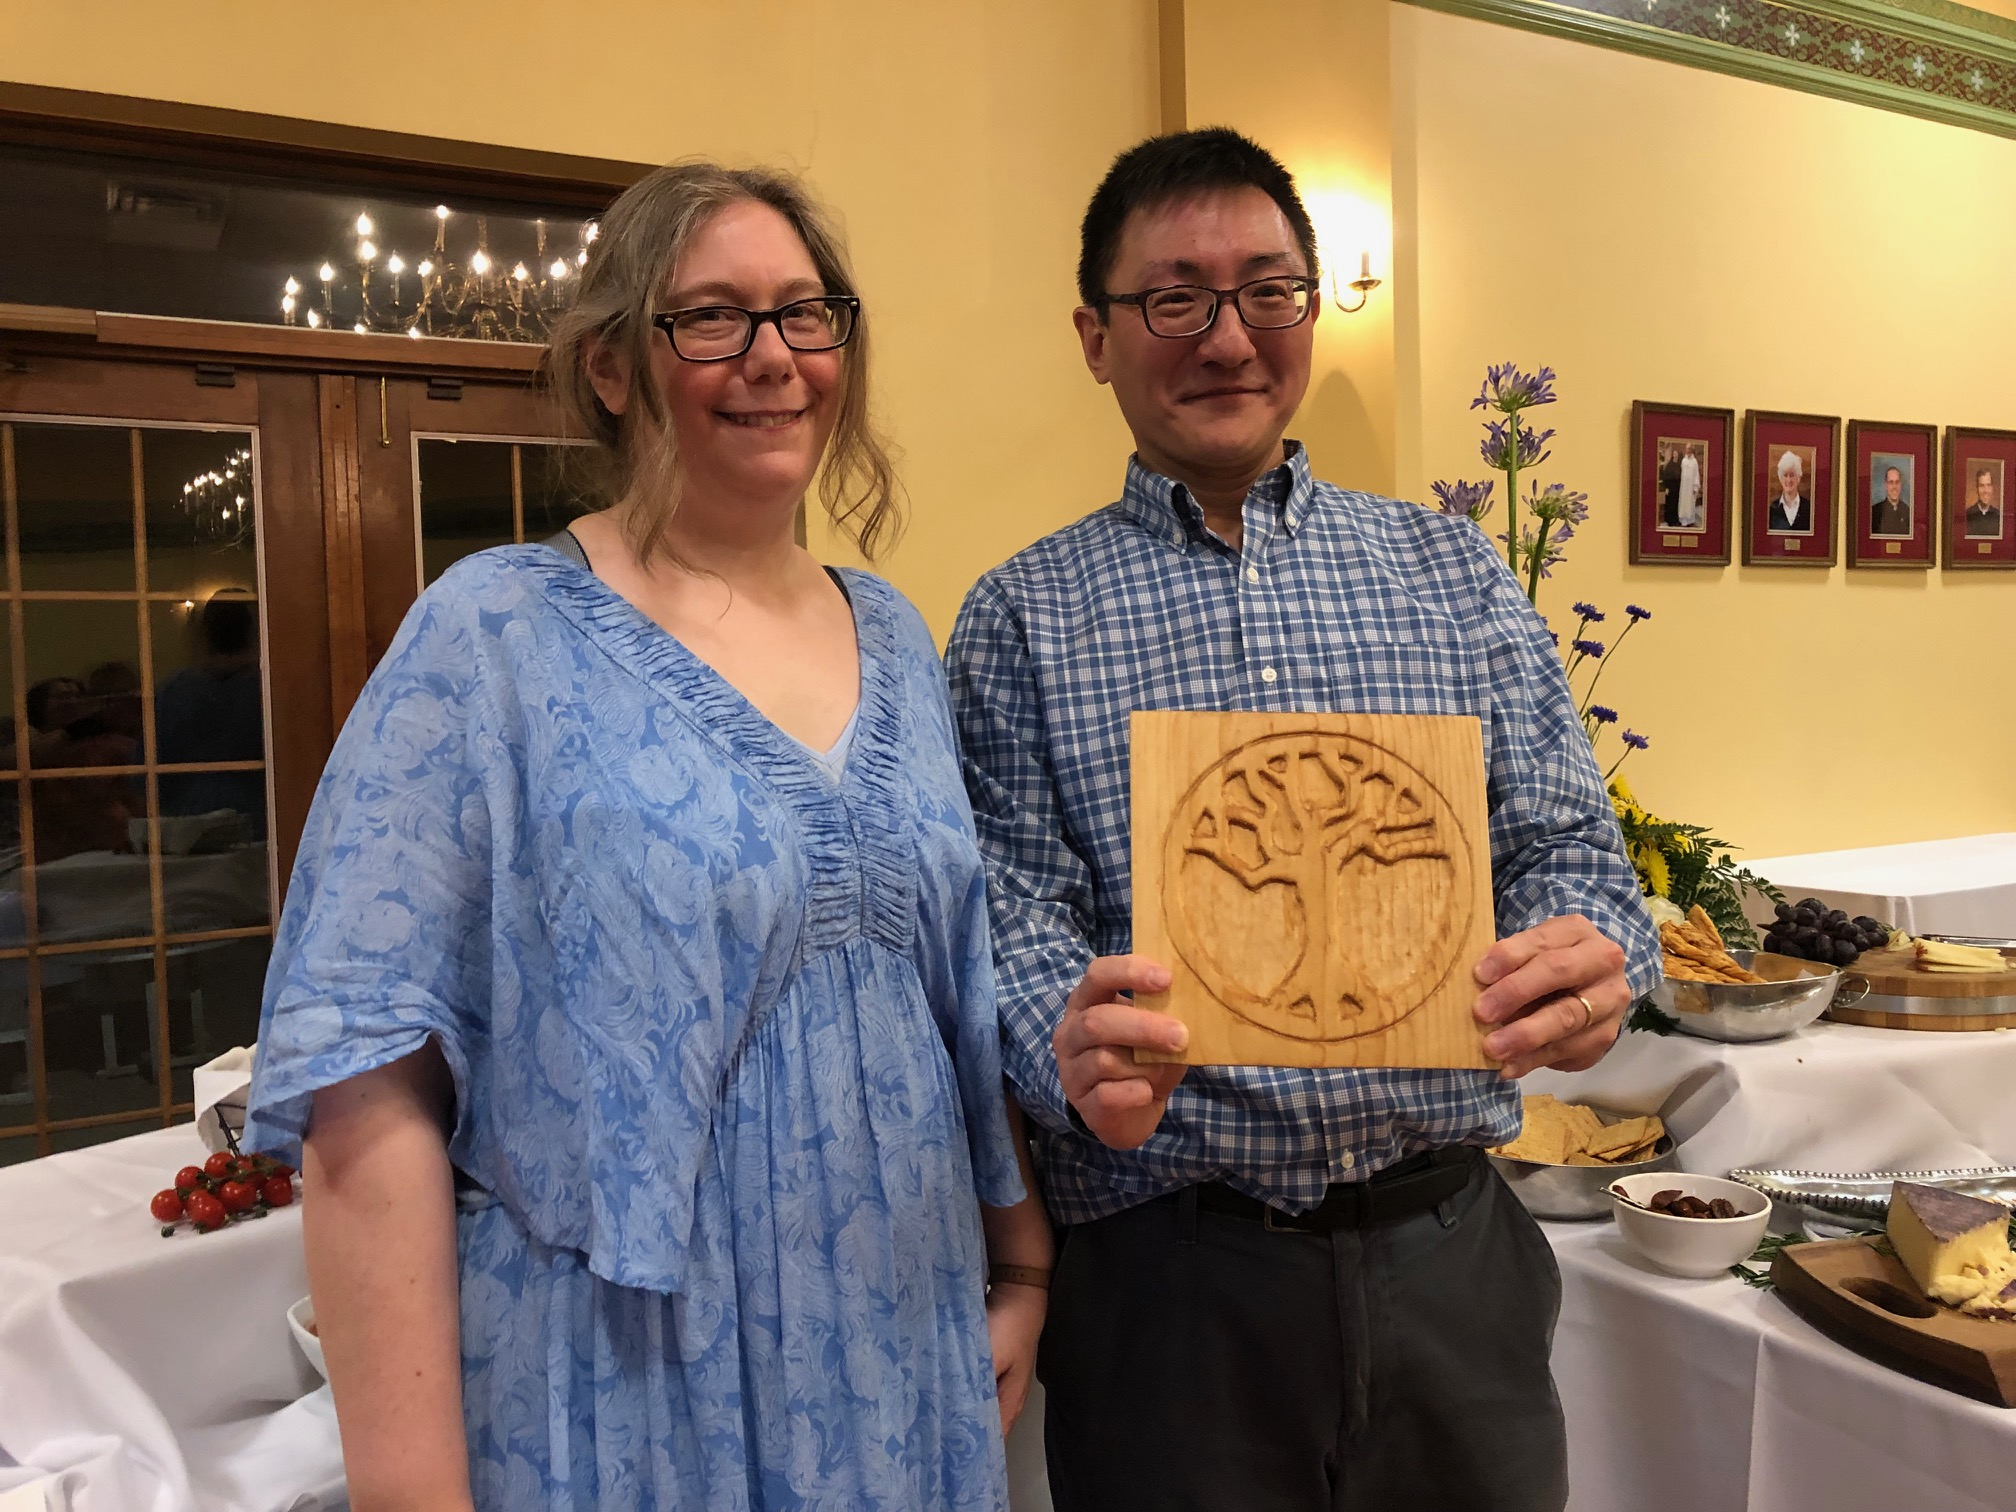 Soprano Emily & tenor Ben Tsai with a wood carving made by Bob Shafer